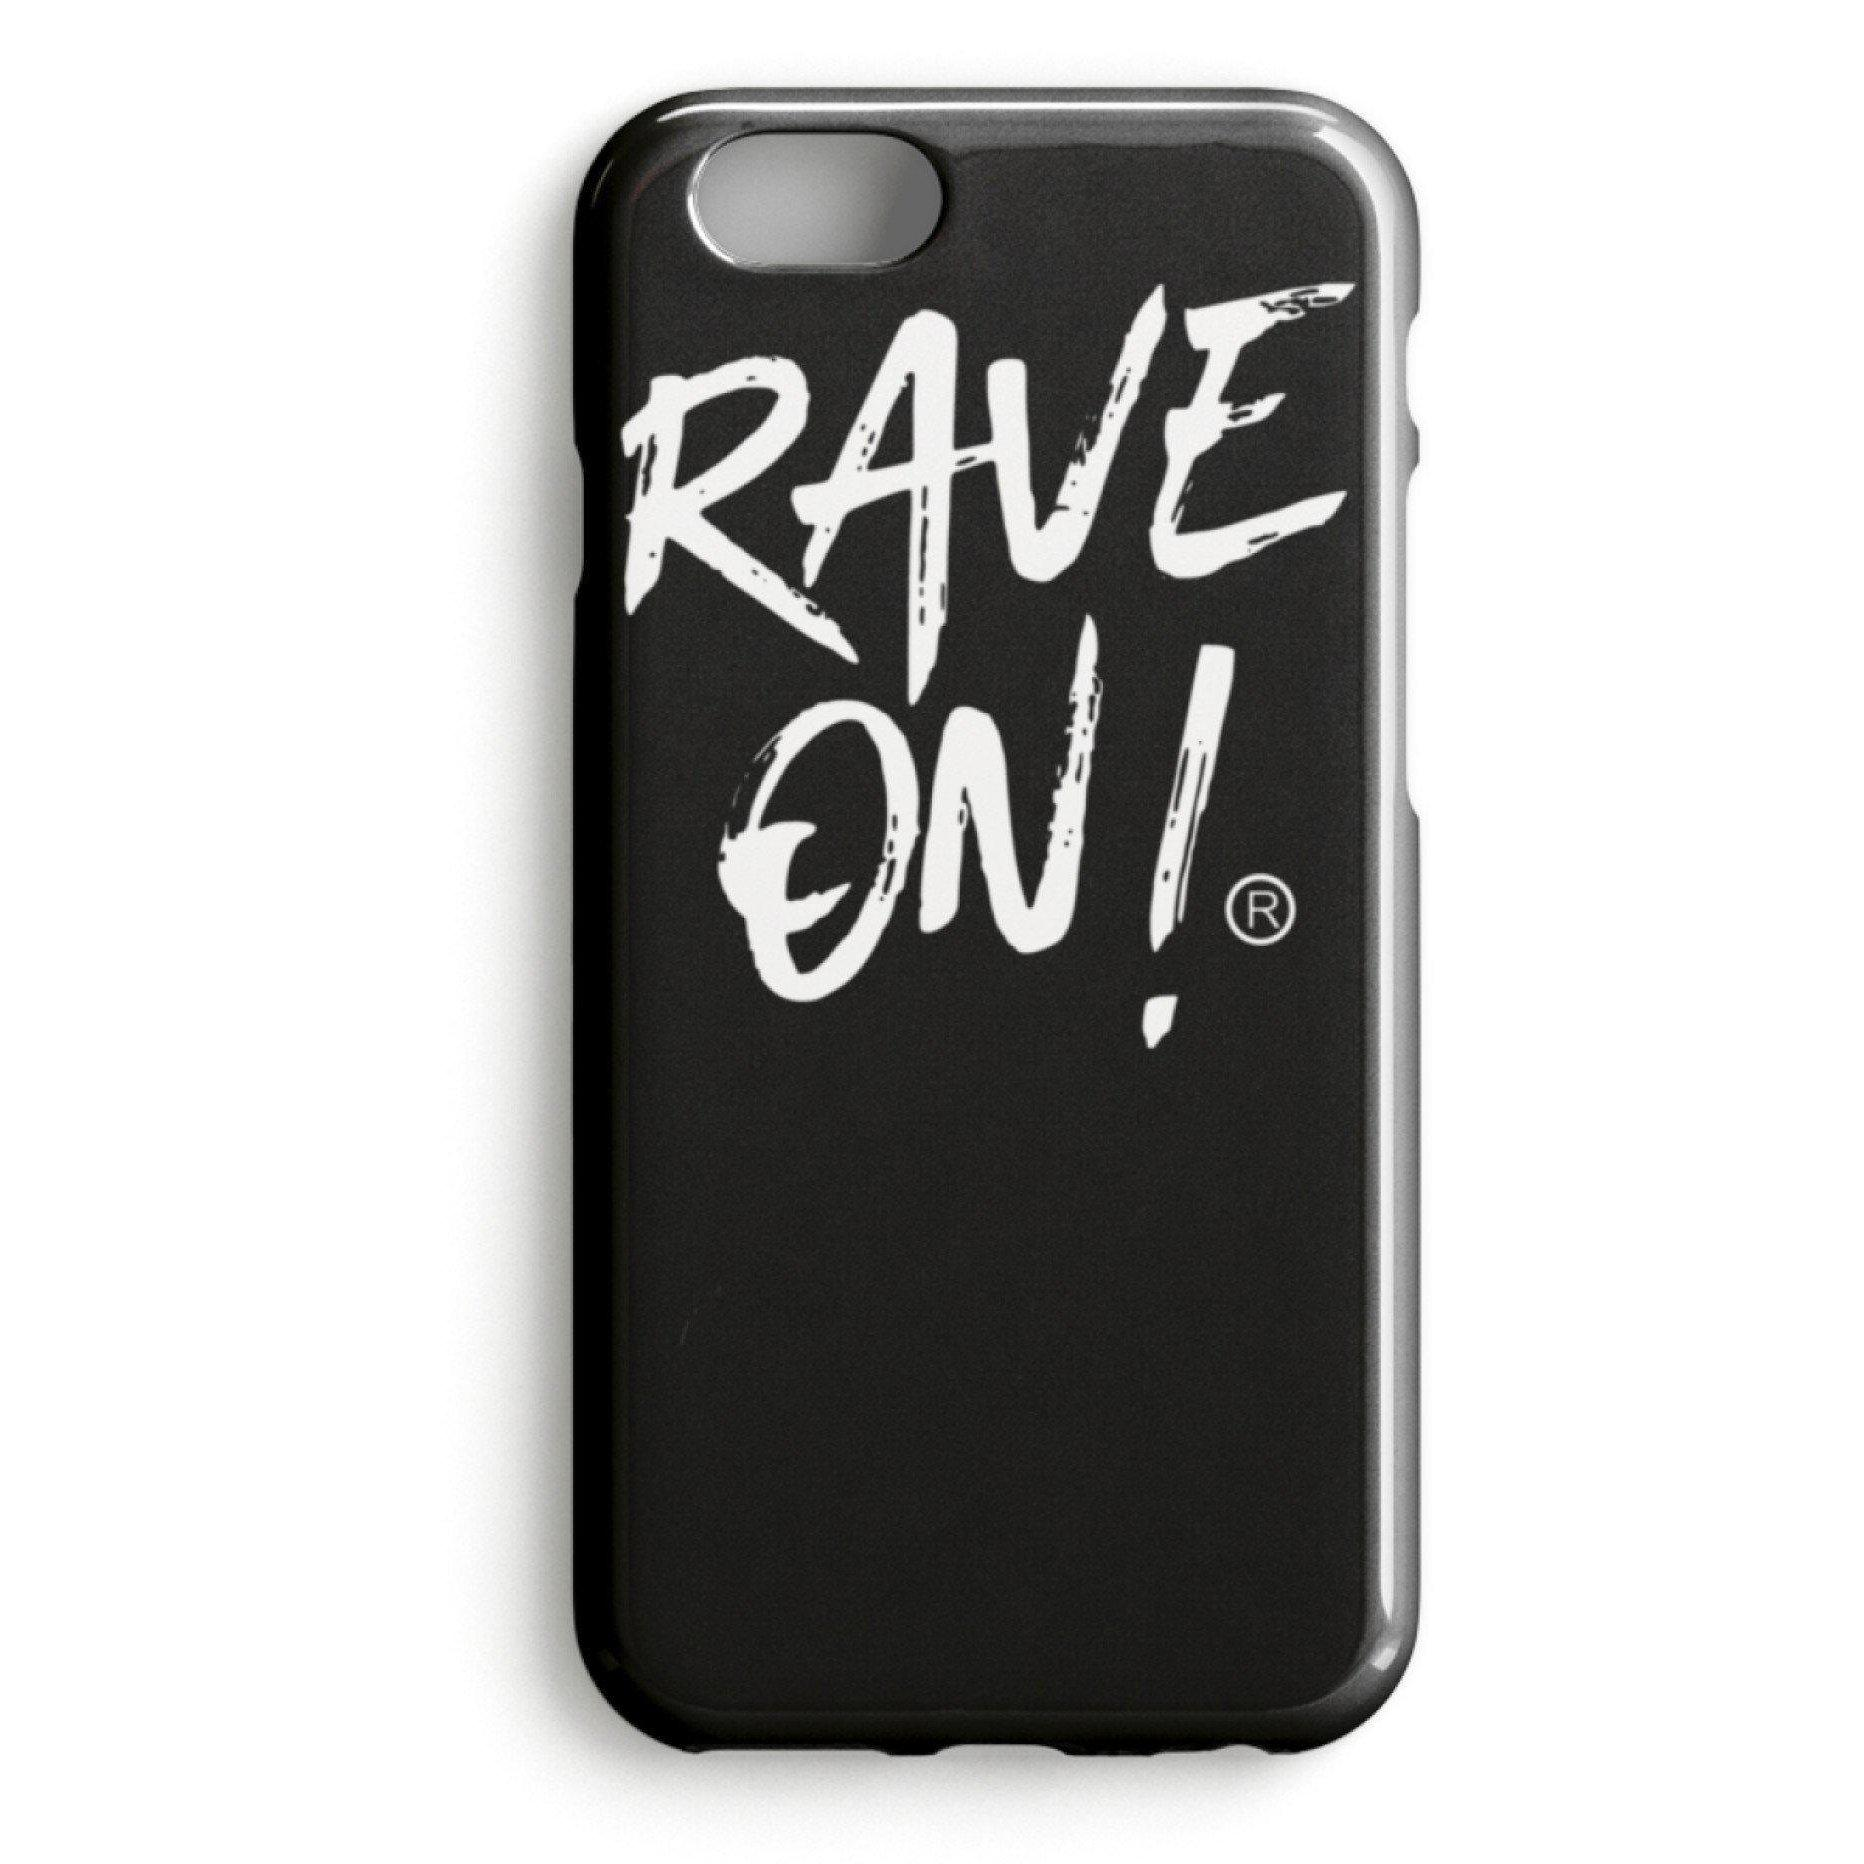 RAVE ON!® Iphone Cover Black Edition-iPhone Premium Case-Schwarz-iPhone 7-Rave-On! I www.rave-on.shop I Deine Rave & Techno Szene Shop I apparel, brand, Case, i heart raves, iphone, marke, Merch, on, on!®, rave, rave apparel, rave clothes, rave clothing, rave fashion, rave gear, Rave on, Rave On!®, rave shop, rave wear, raver, samsung, Shop, techno, techno apparel, techno handyhülle, ® - Sexy Festival Streetwear , Clubwear & Raver Style